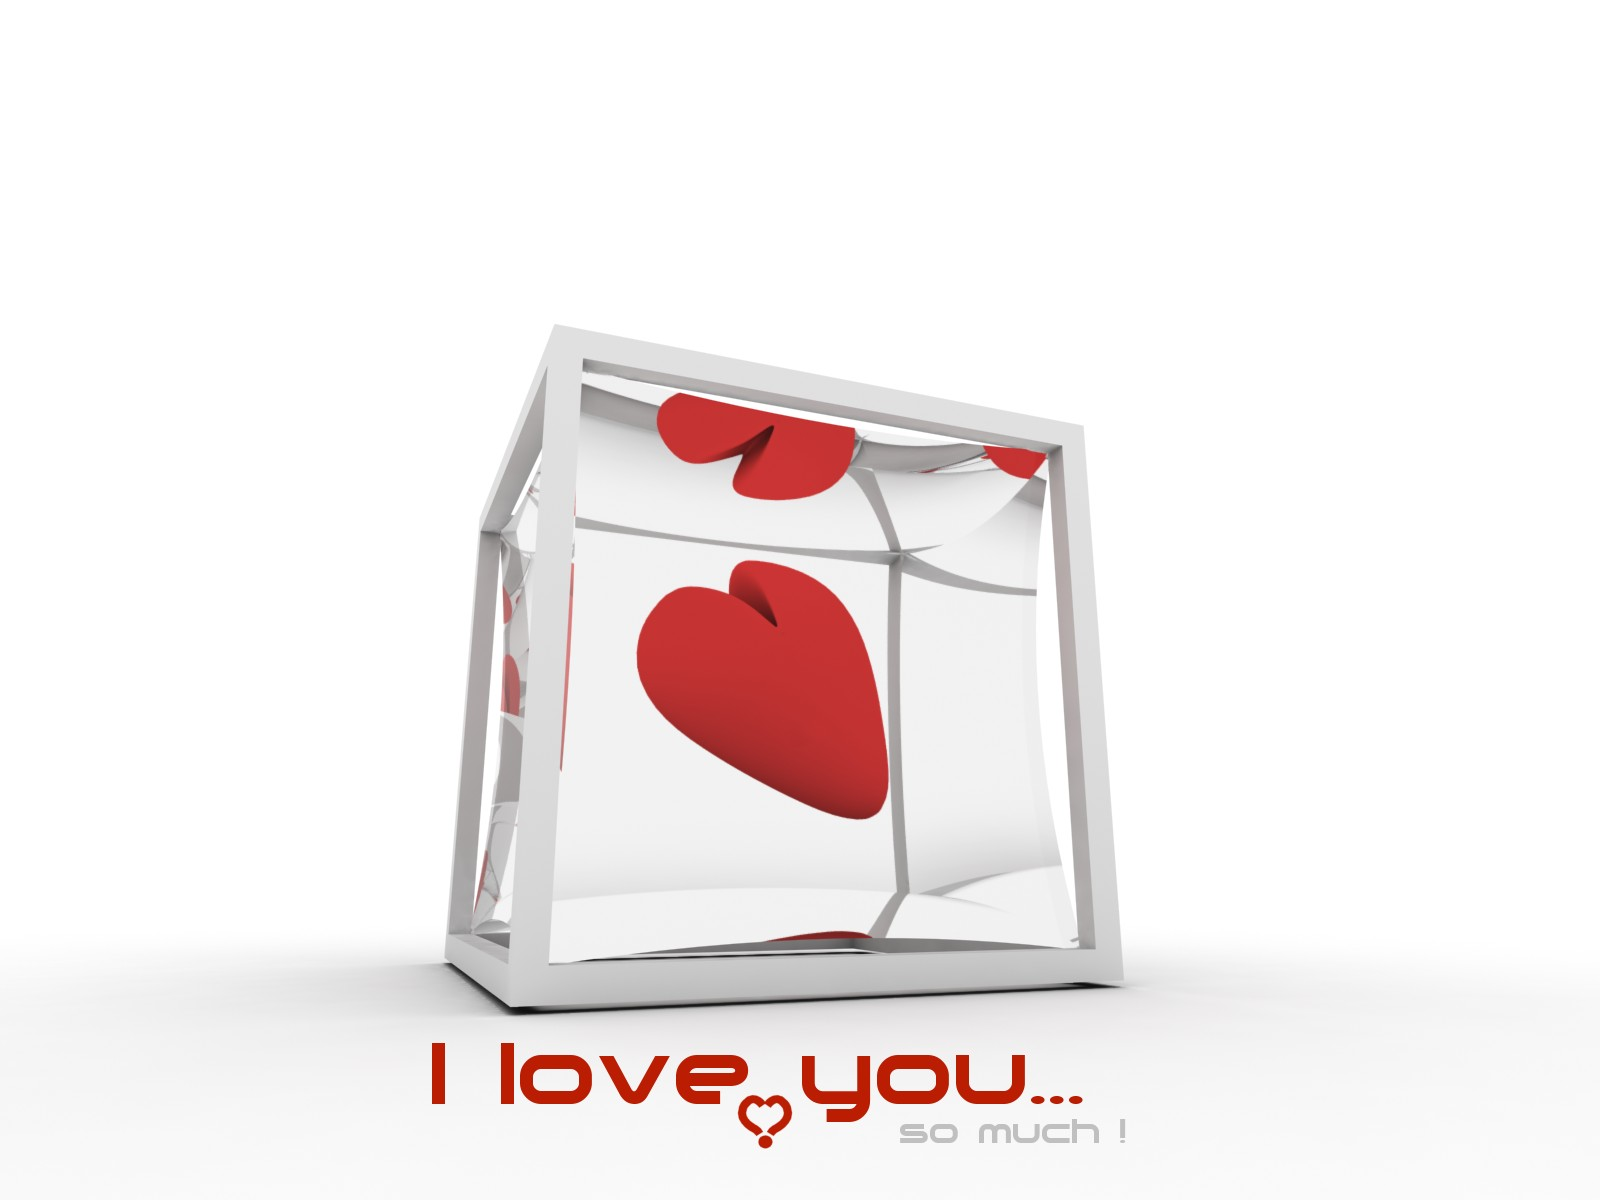 Wallpaper I Love You So Much Free : I Love You So much 3D Heart in cube HD Wallpaper HD Desktop Wallpapers